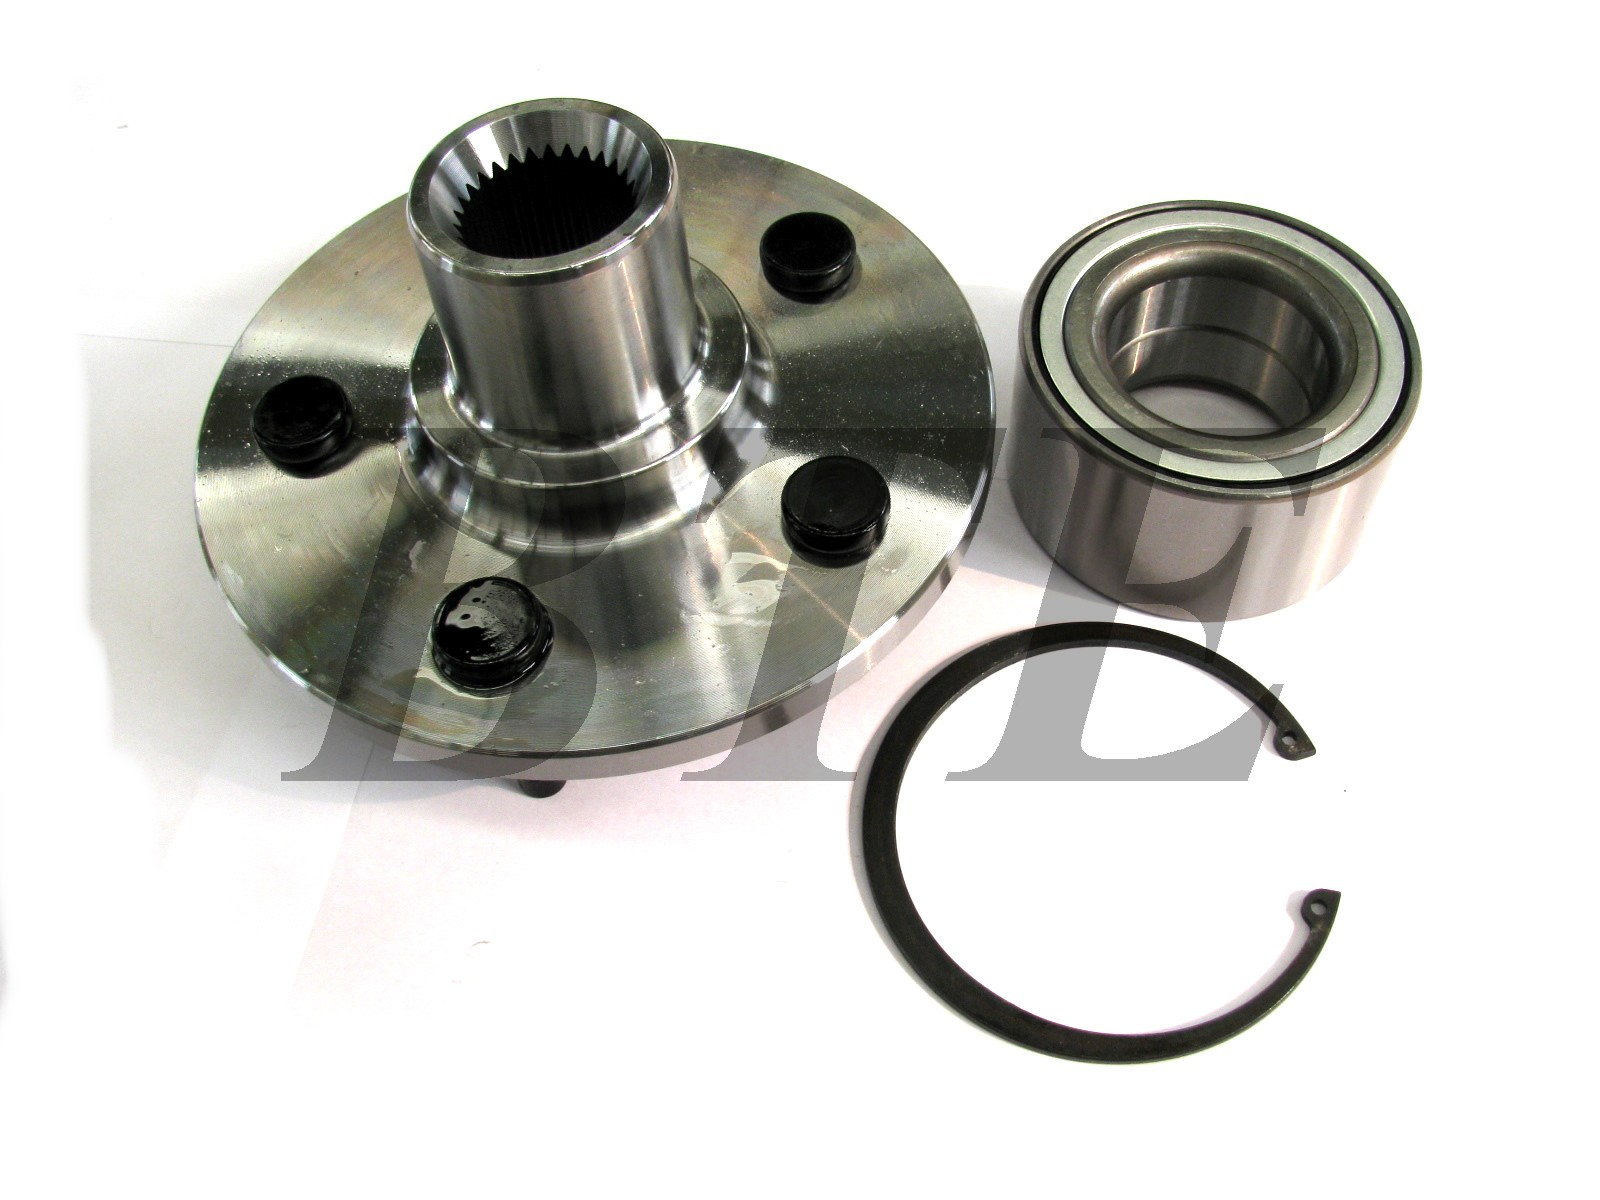 wheel bearing, hub and kits, wheel hub unit - BTE No. , OE No. and other reference No.